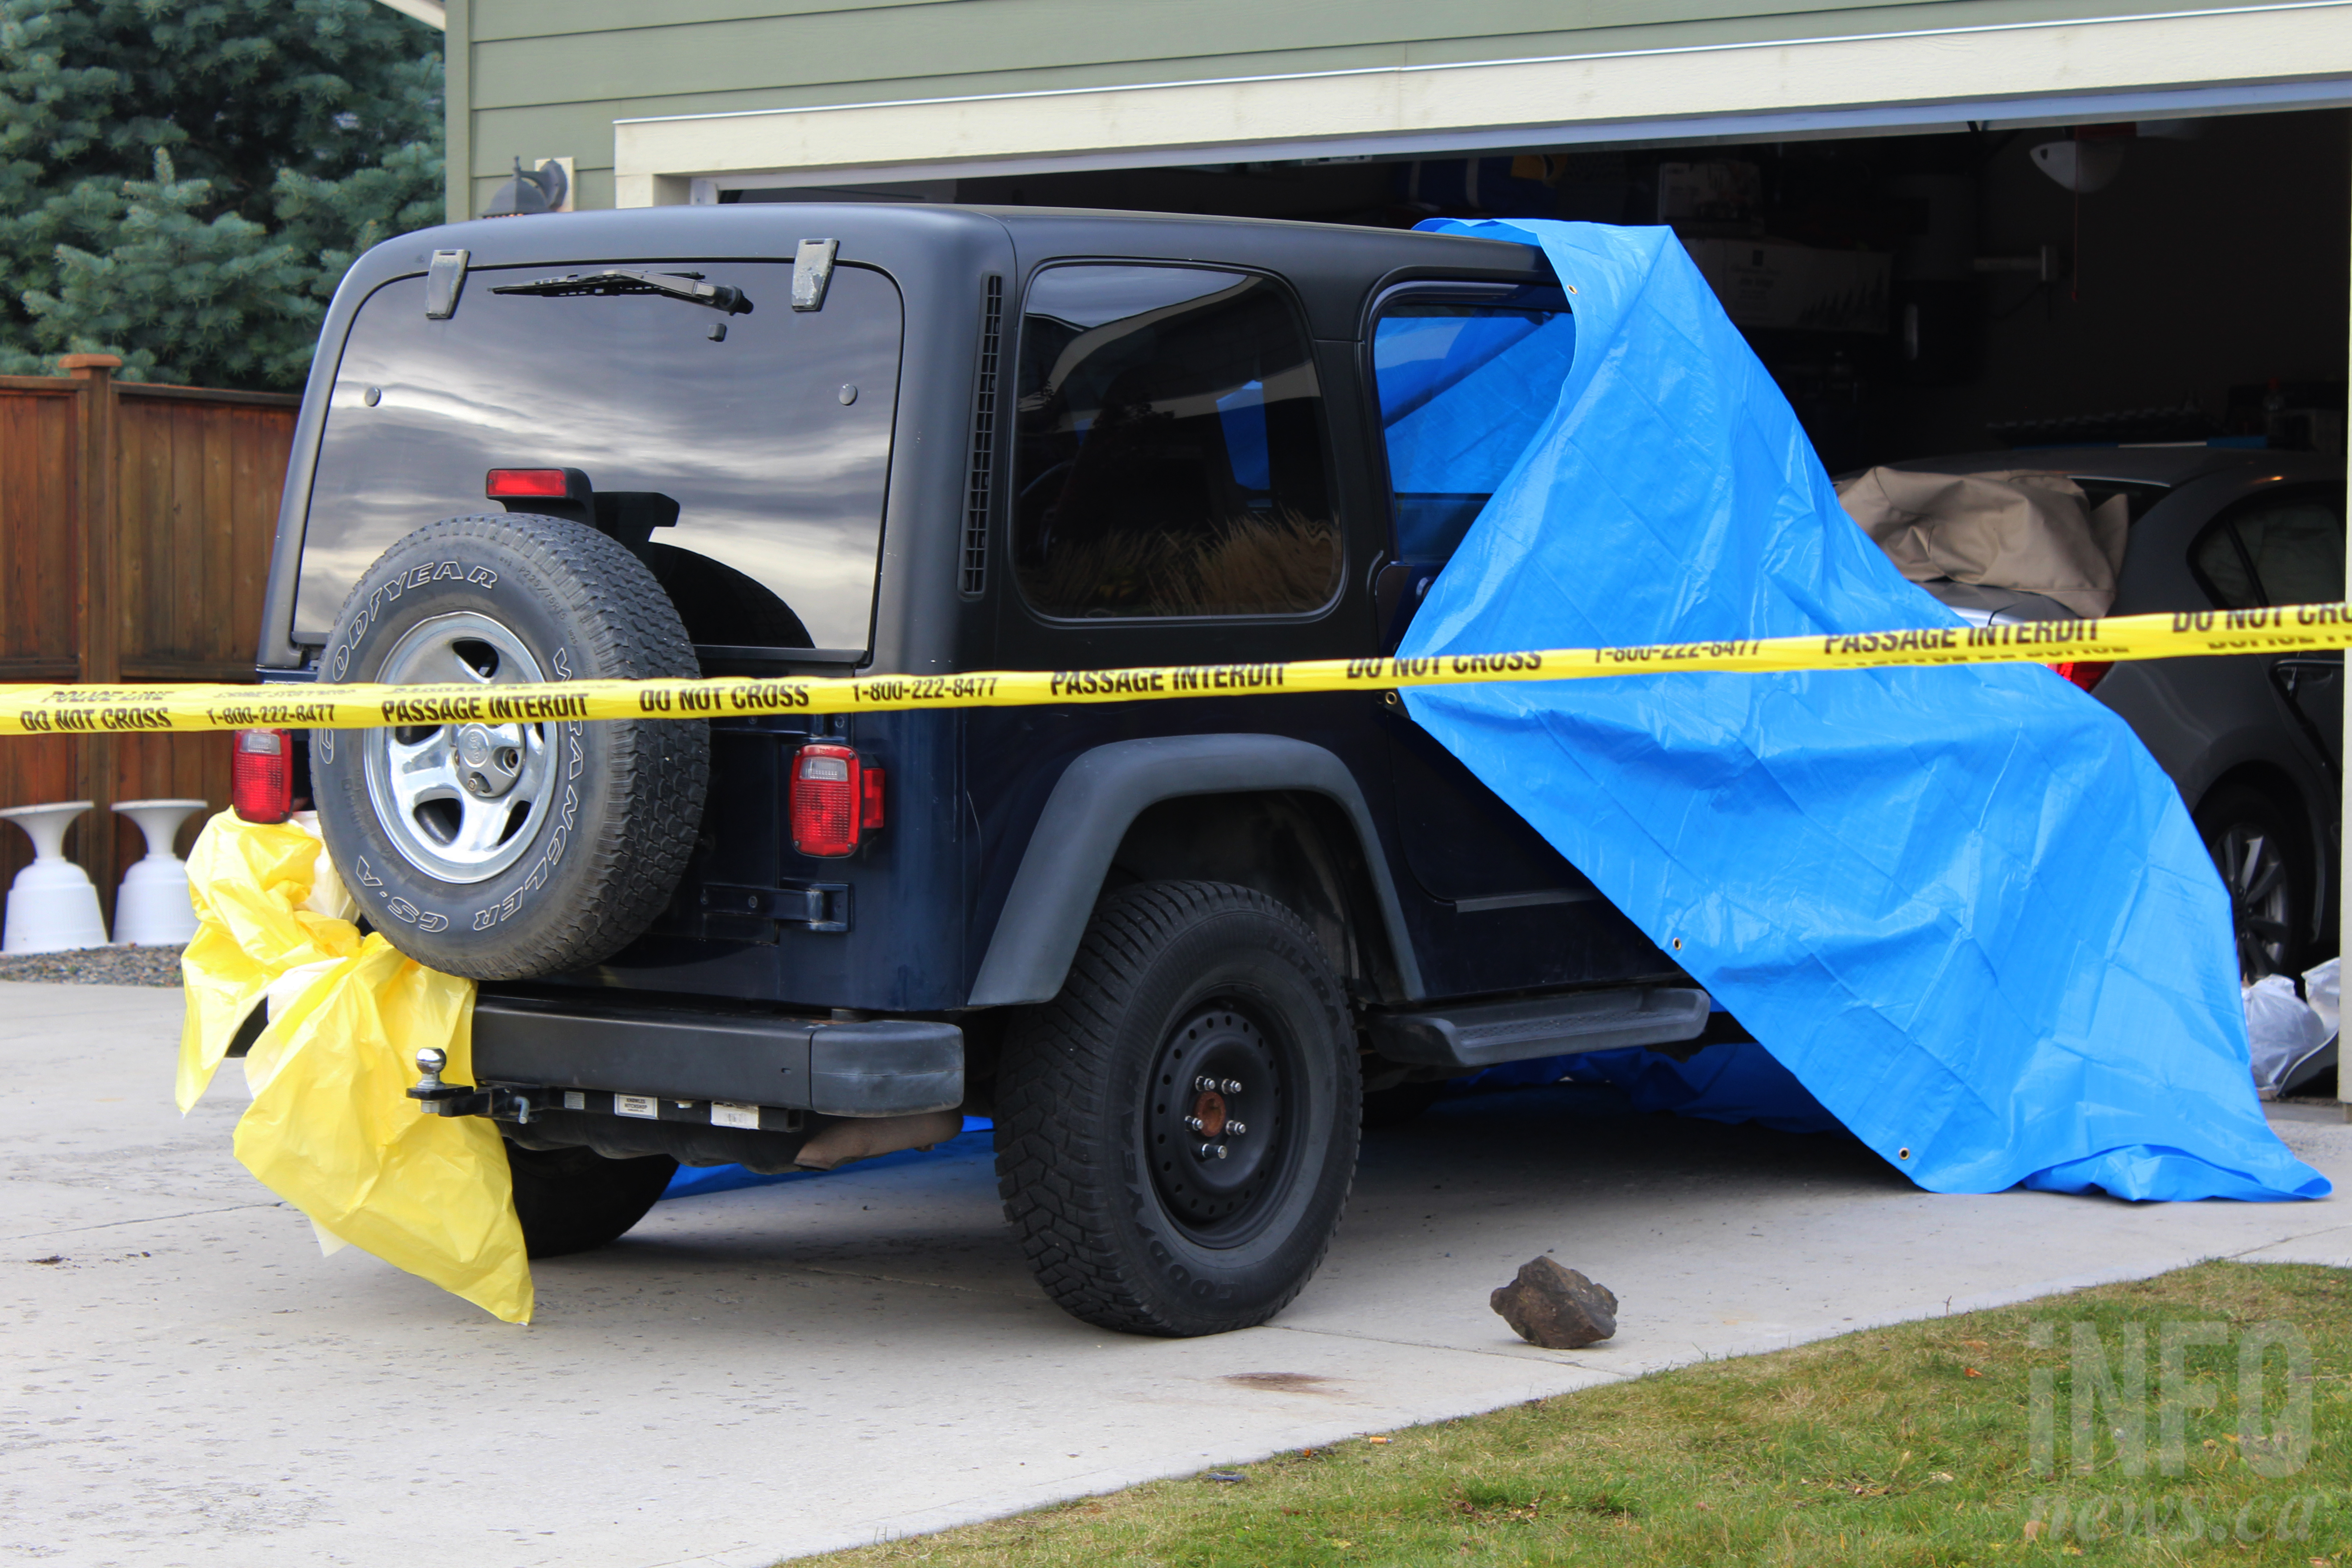 hit and run kamloops rcmp says finding suspect is top priority infonews. Black Bedroom Furniture Sets. Home Design Ideas